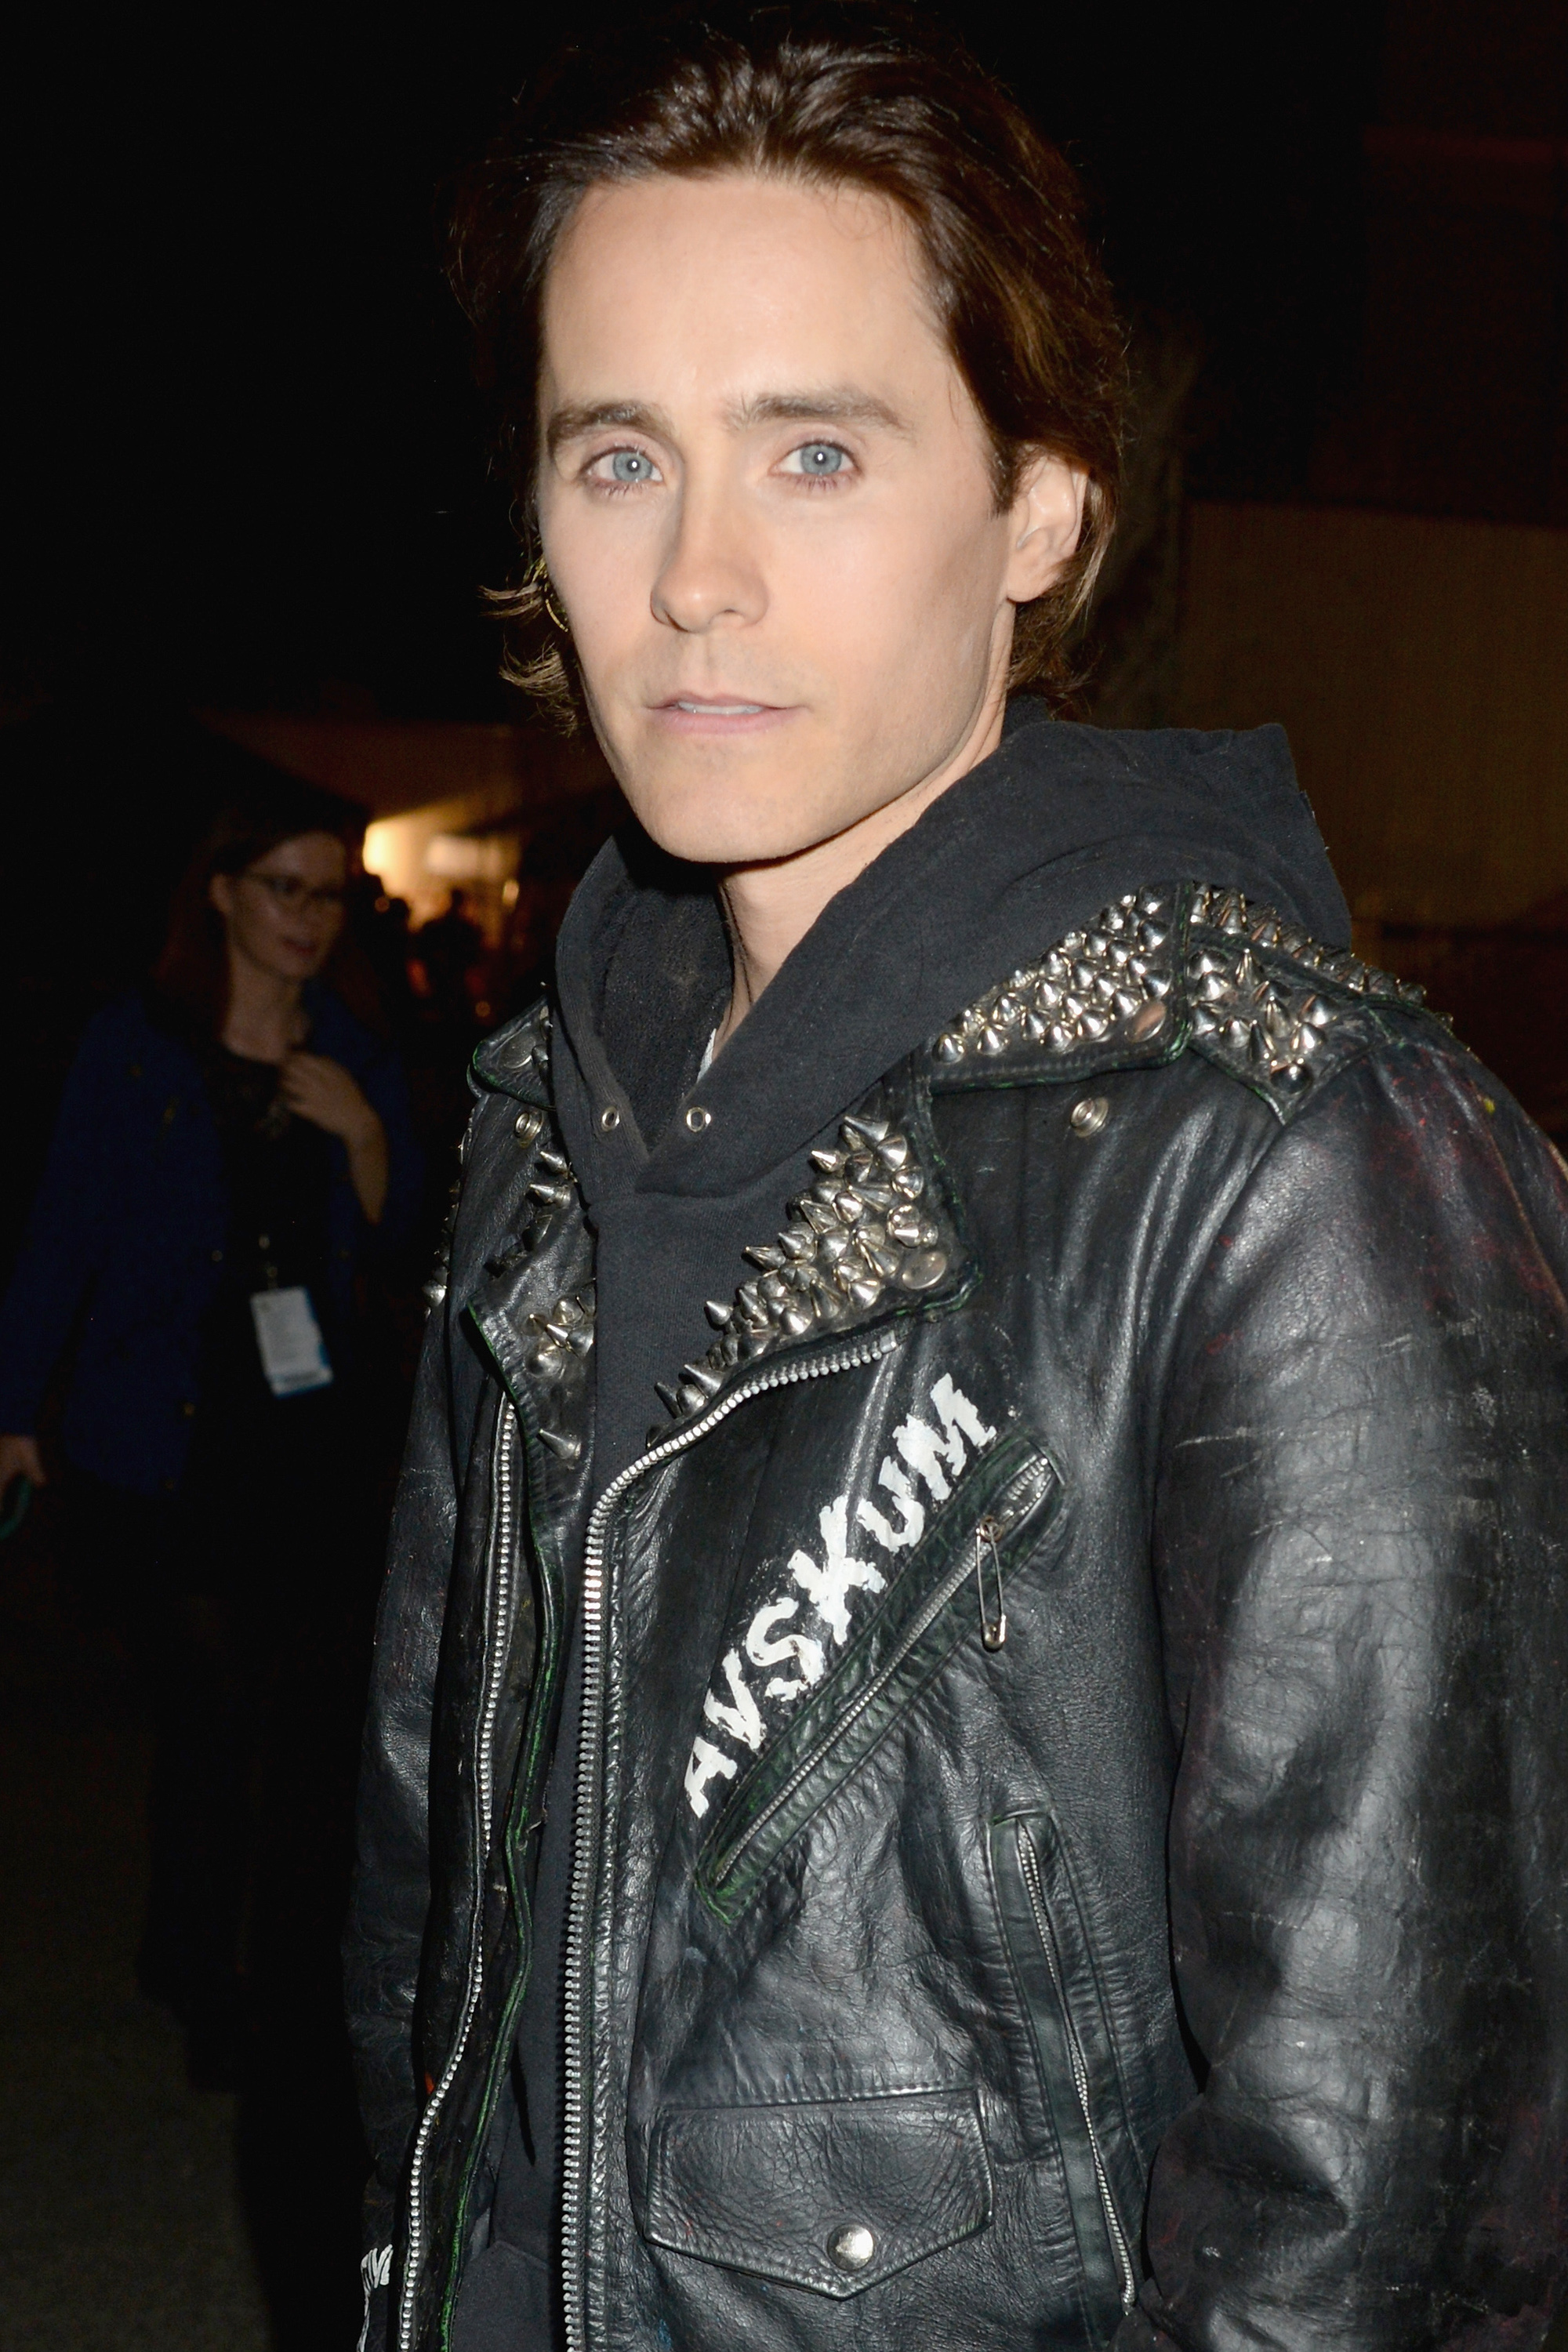 Jared Leto Normal Hair at the MTV Movie Awards - 35 Photos ... Jared Leto